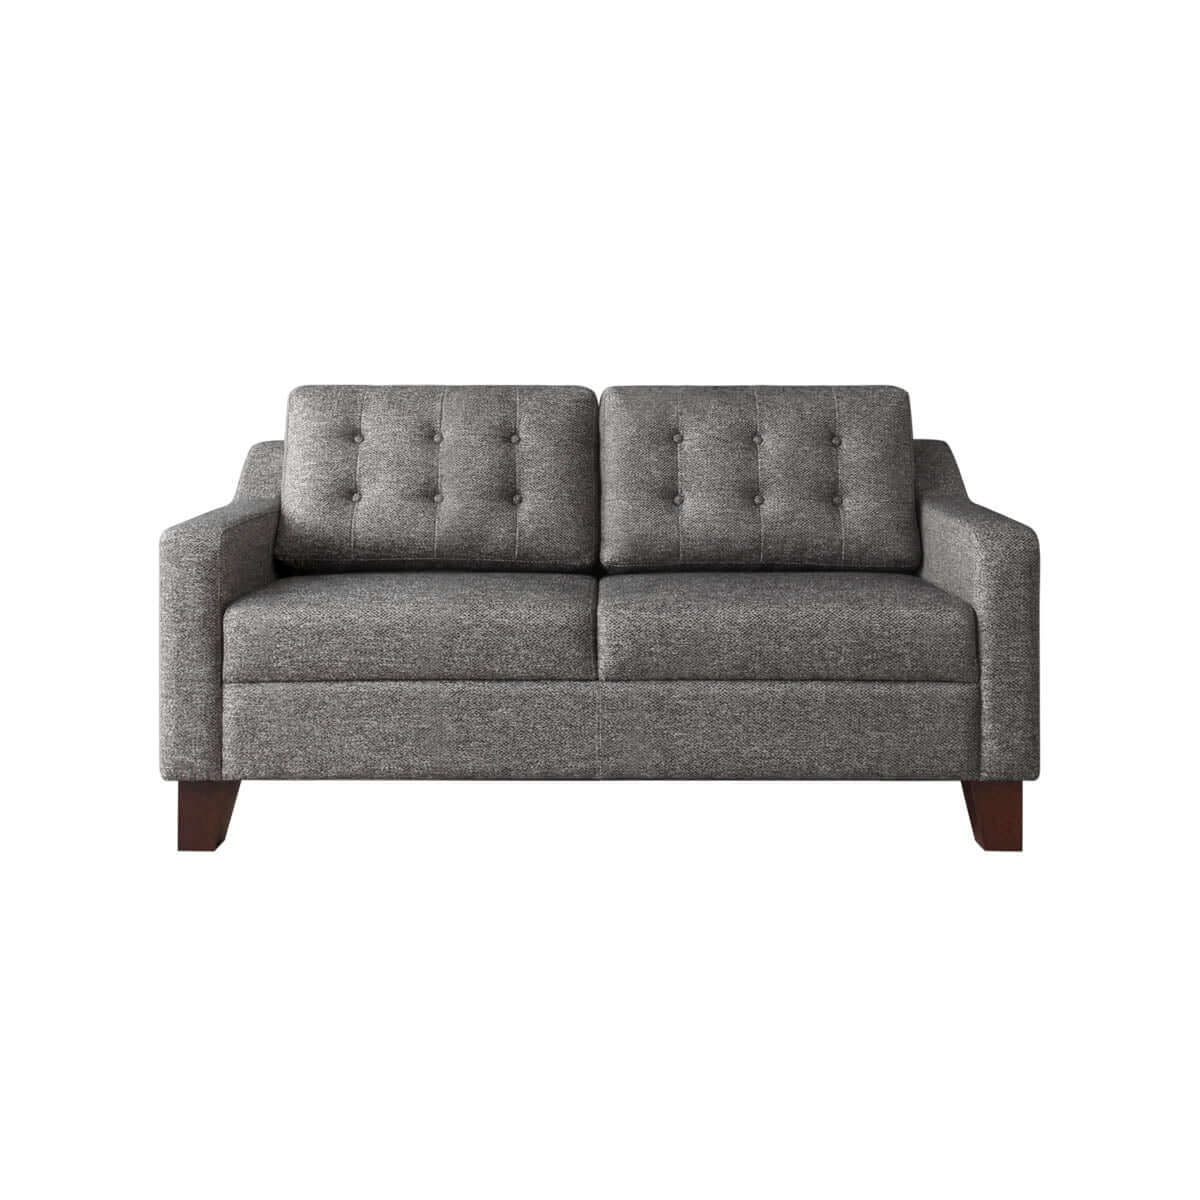 Columbus 2-Seat Sofa - Vinoti Living